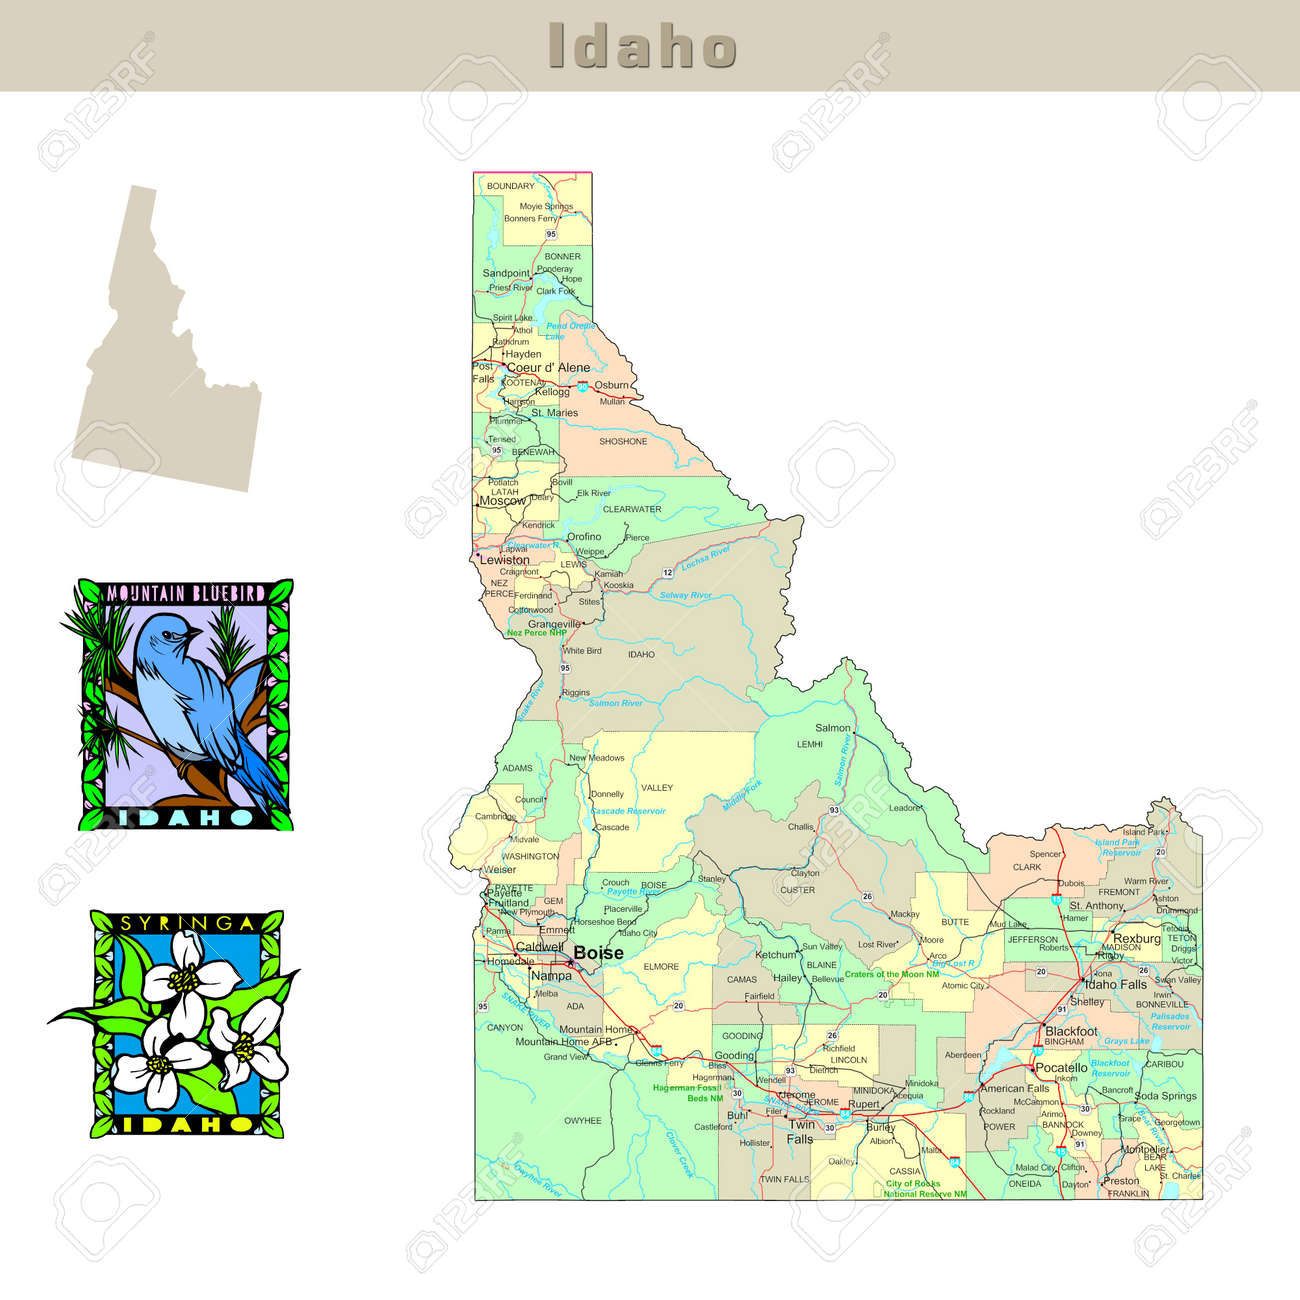 USA States Series Idaho Political Map With Counties Roads - Idaho political map